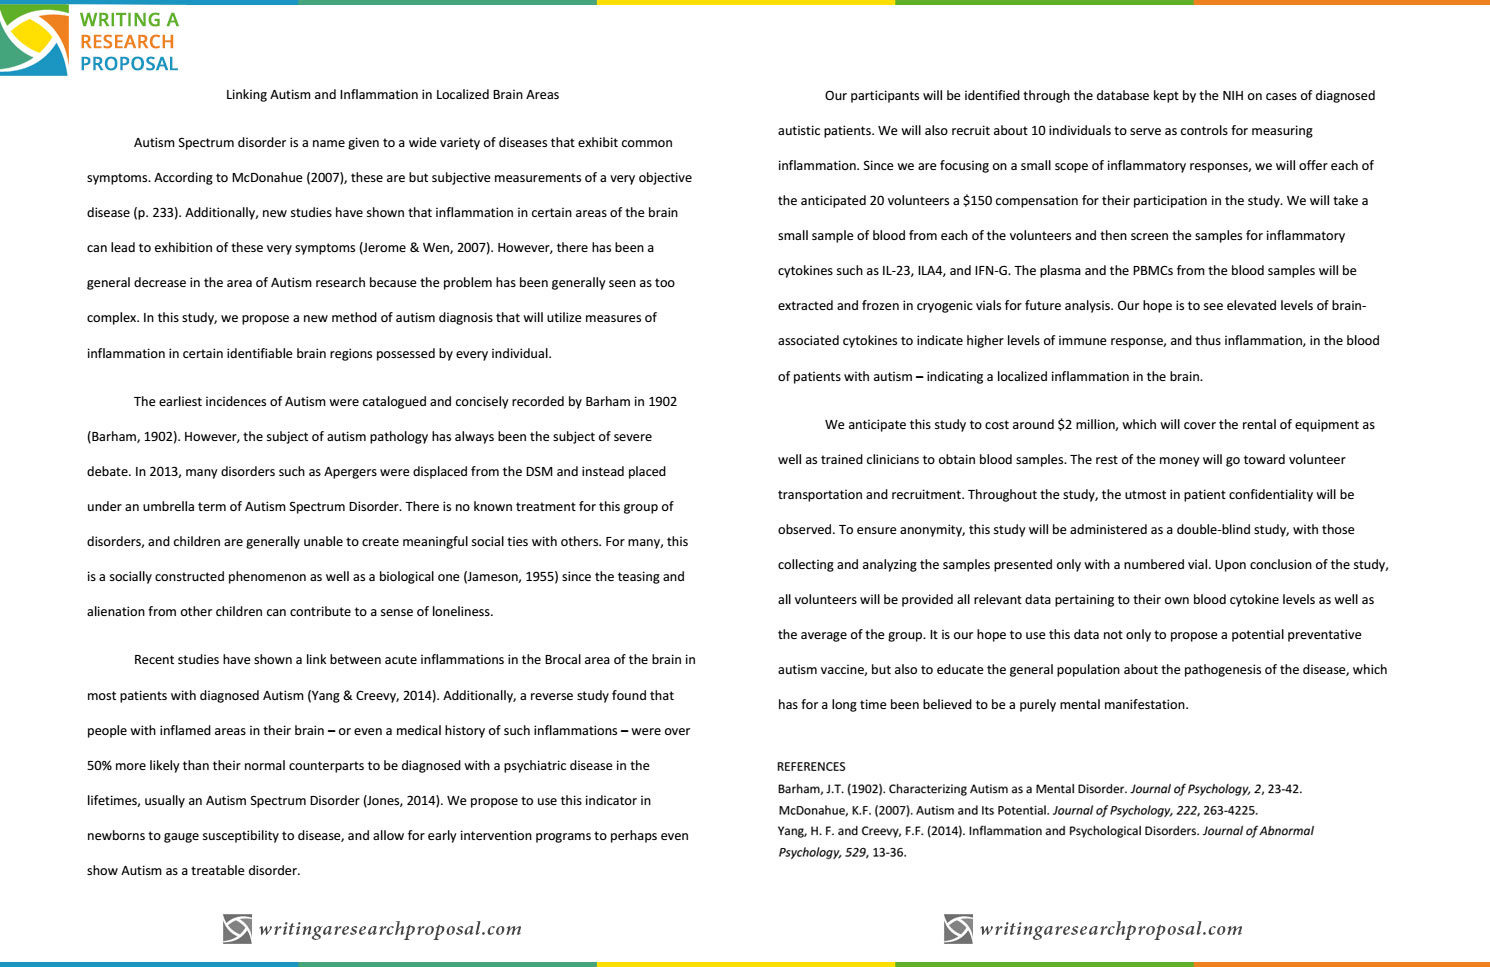 004 Research Paper Writing Apa Style Example Of Stirring In Using Format 6th Edition Full